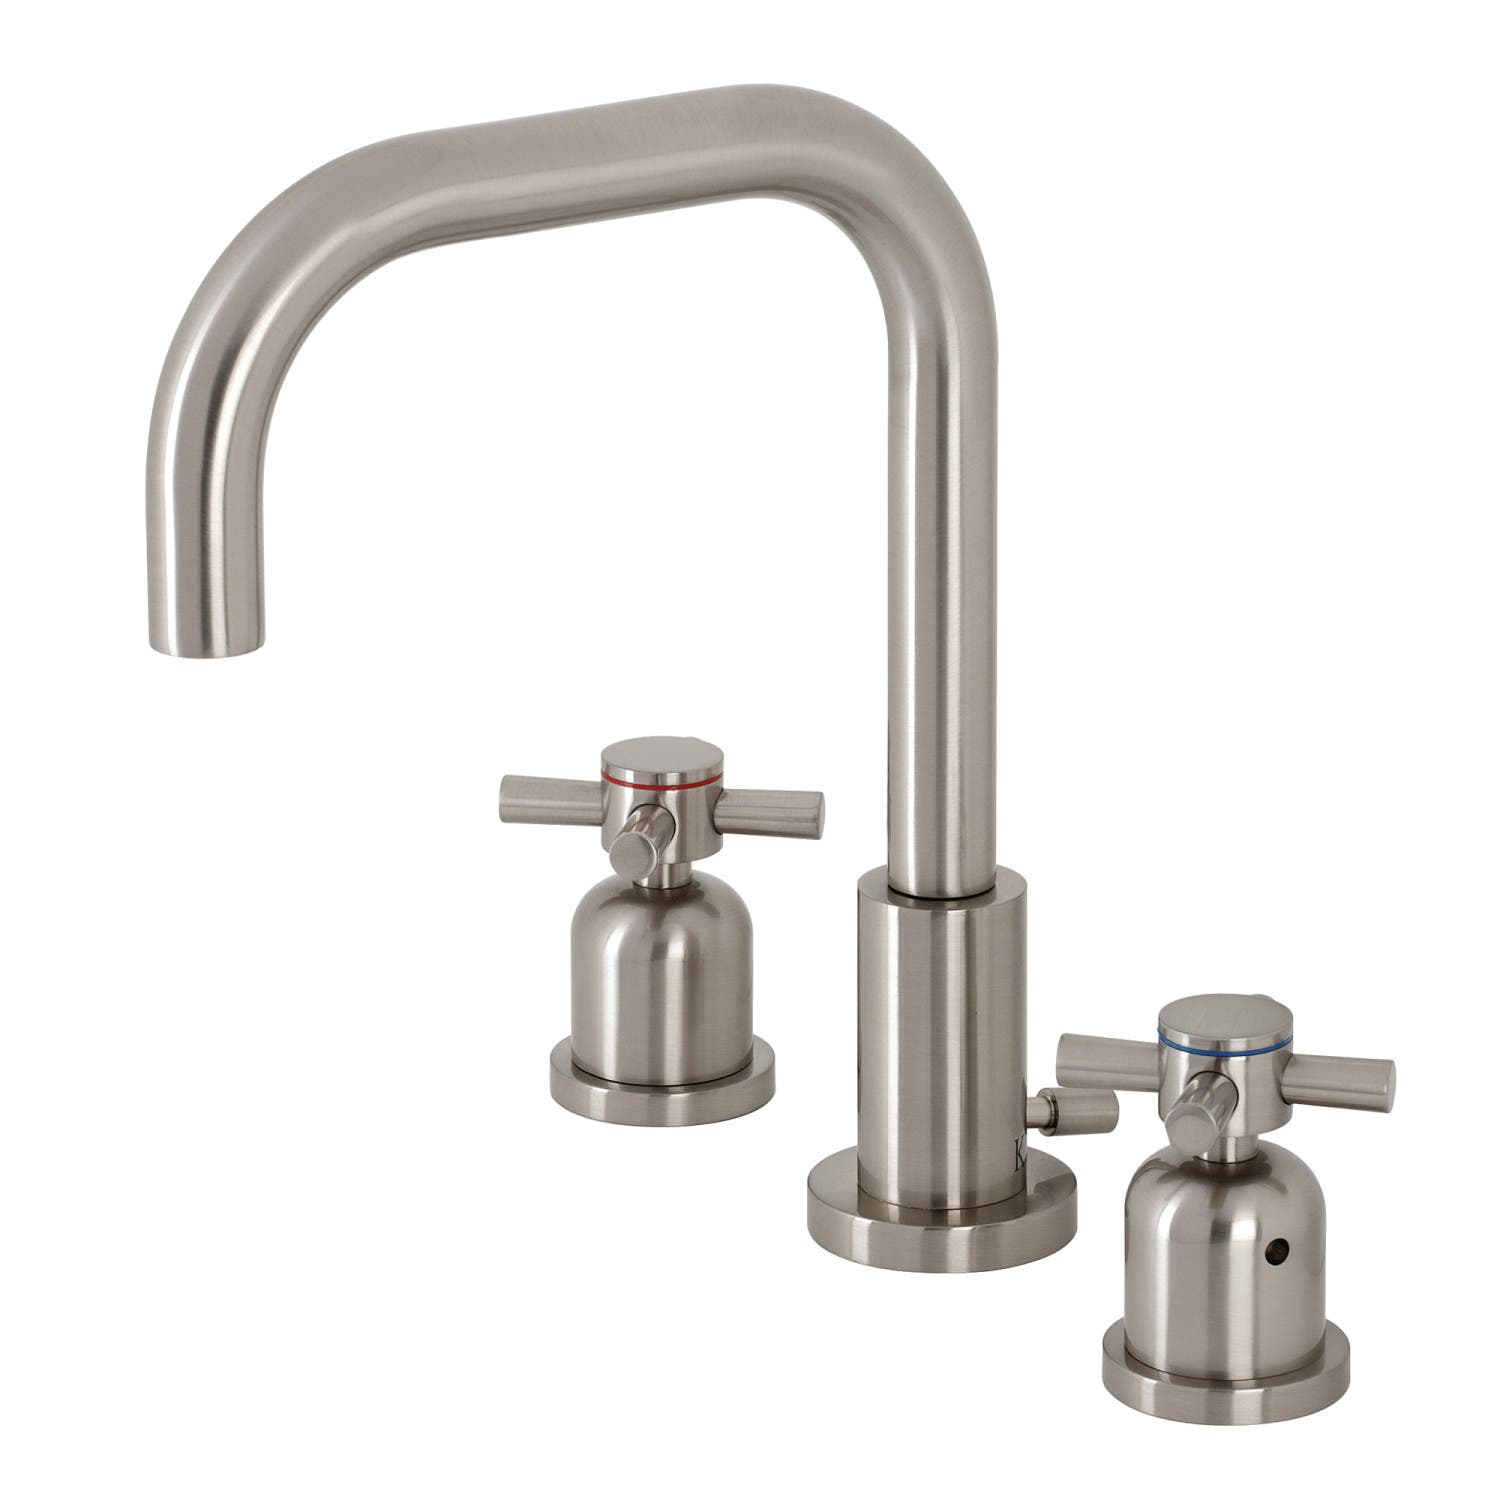 Kingston Brass FSC8938DX Concord Widespread Bathroom Faucet with Brass Pop-Up, Brushed Nickel